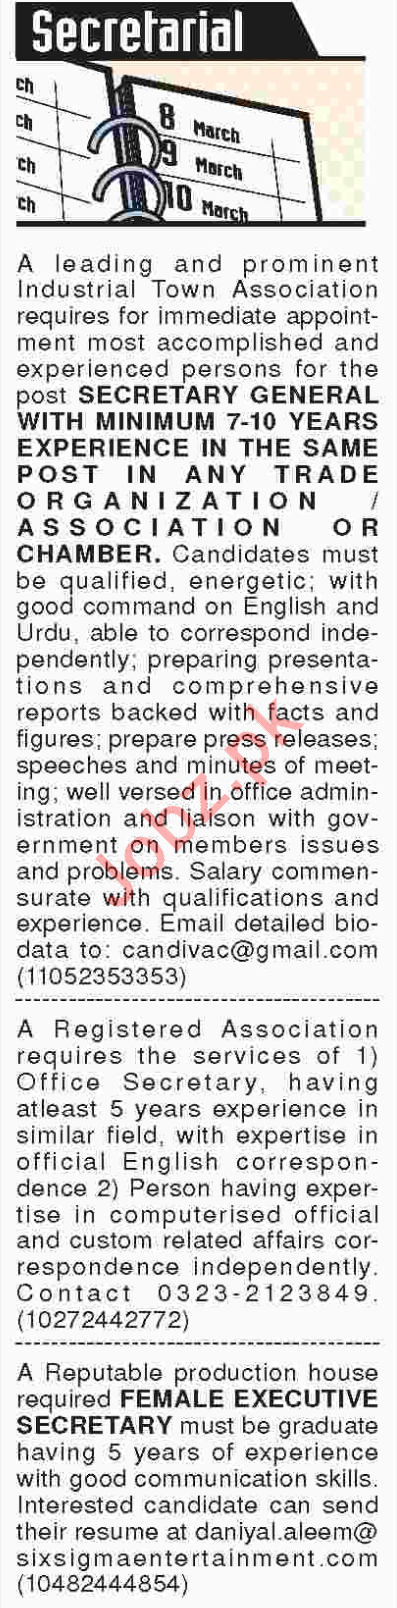 Secretarial Job Opporunities 2018 In Karachi